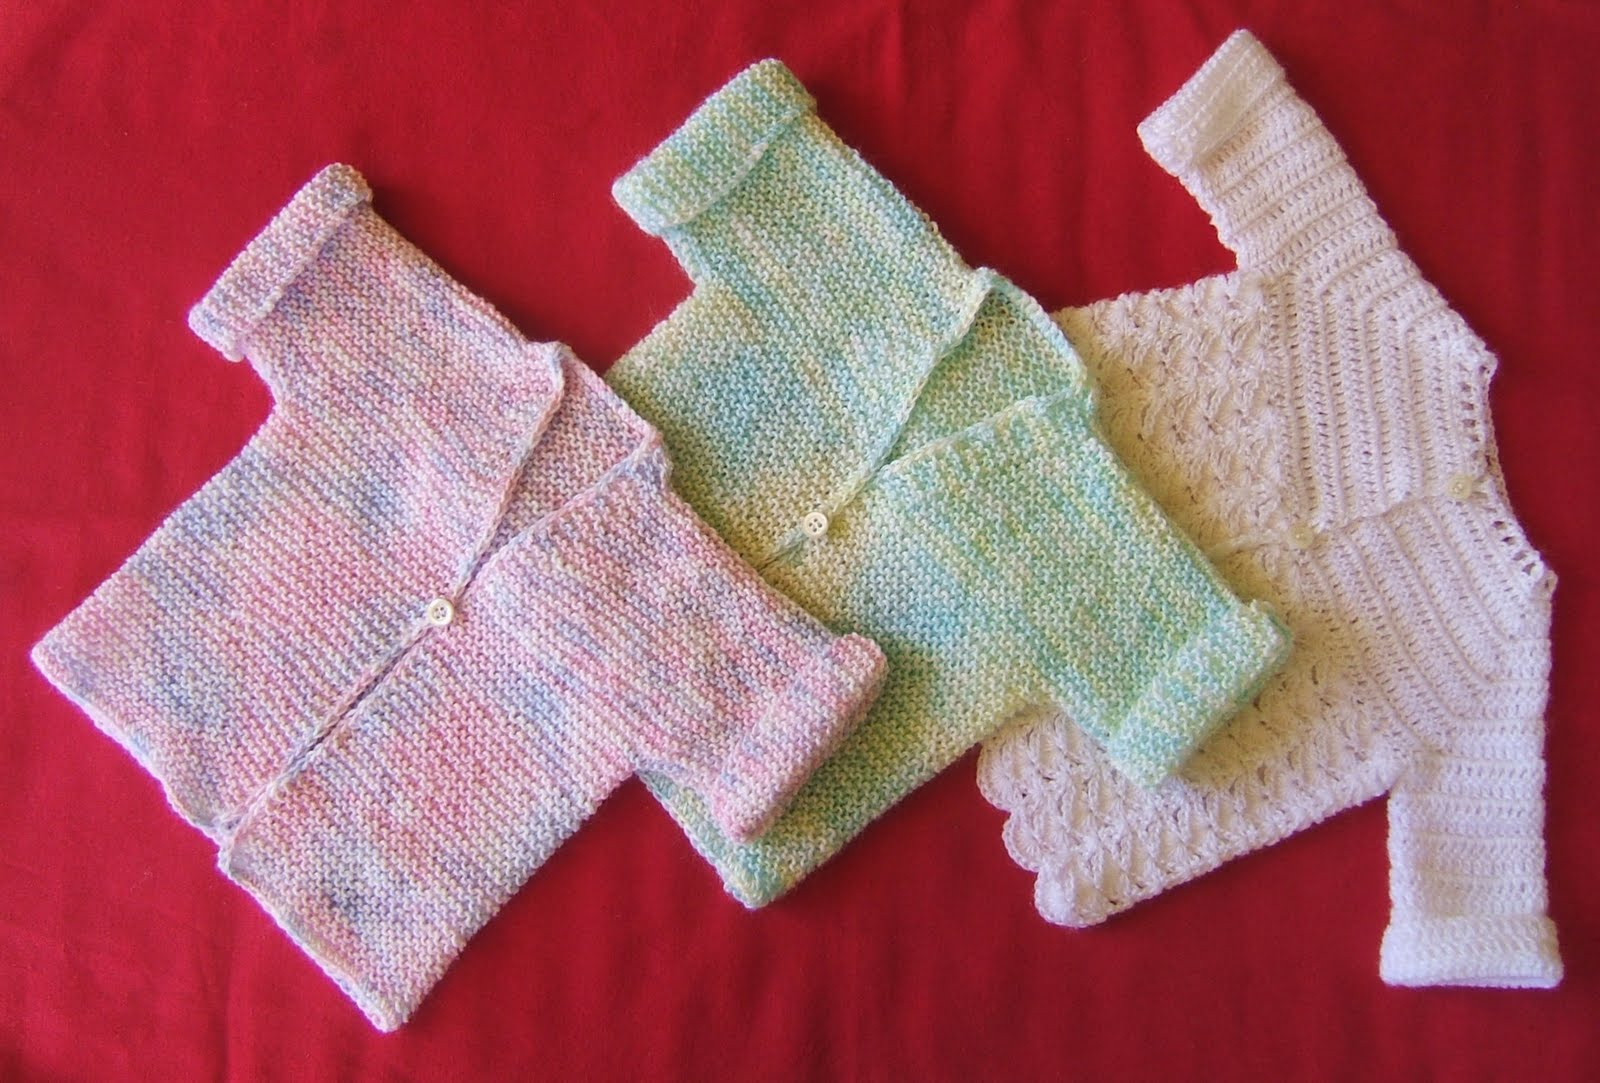 aussie knitting threads: Baby jackets